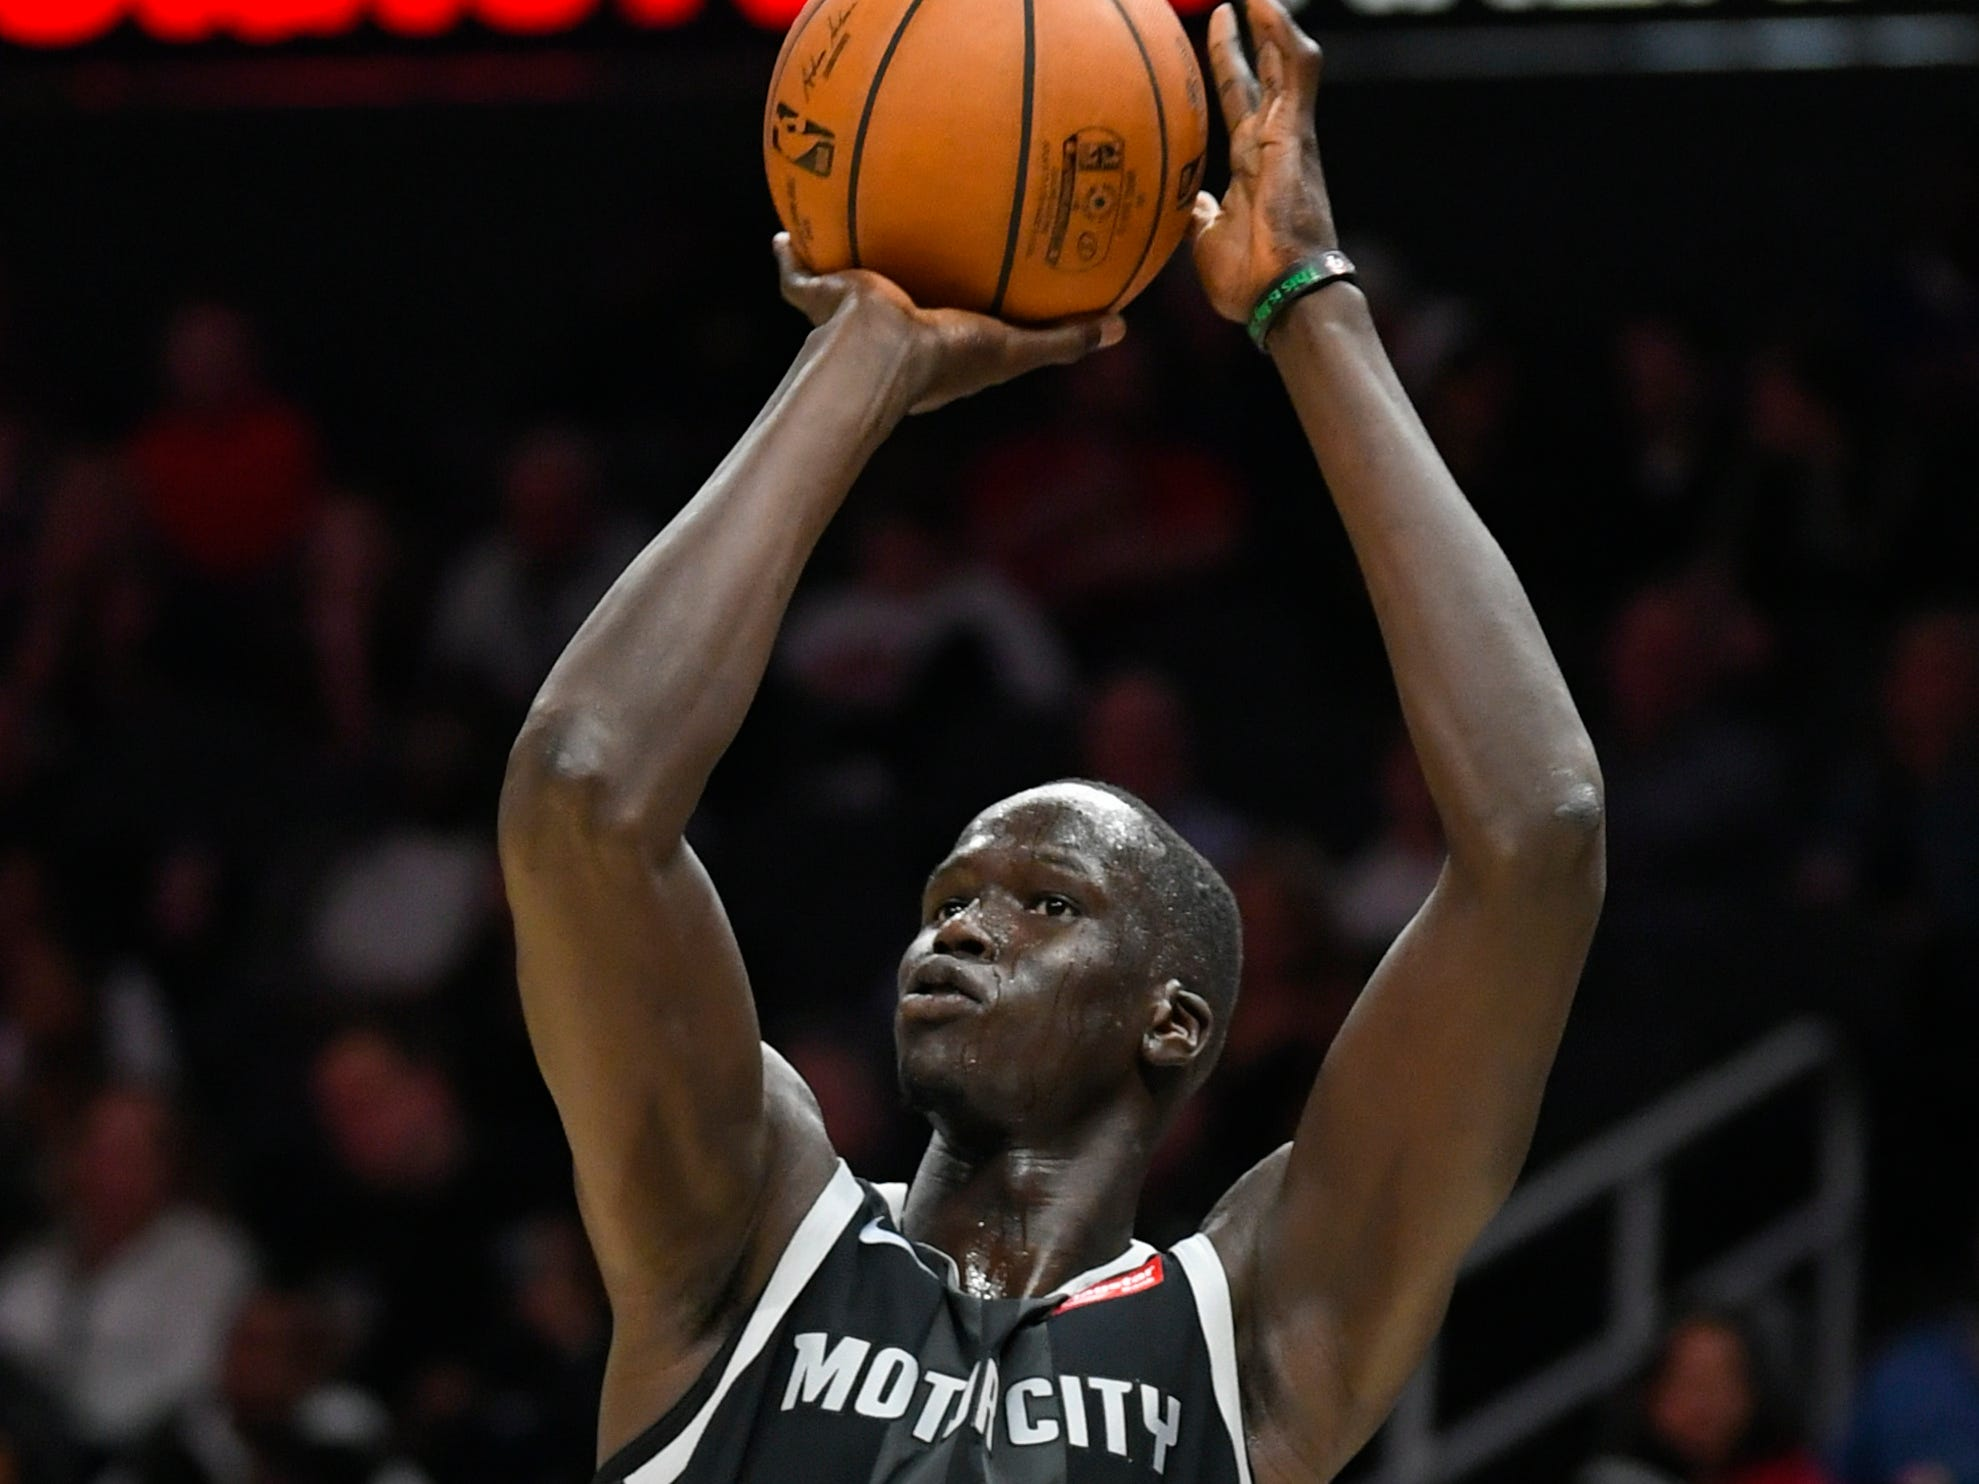 Detroit Pistons forward Thon Maker puts up a jump shot against the Atlanta Hawks during the second half of an NBA basketball game Friday, Feb. 22, 2019, in Atlanta.